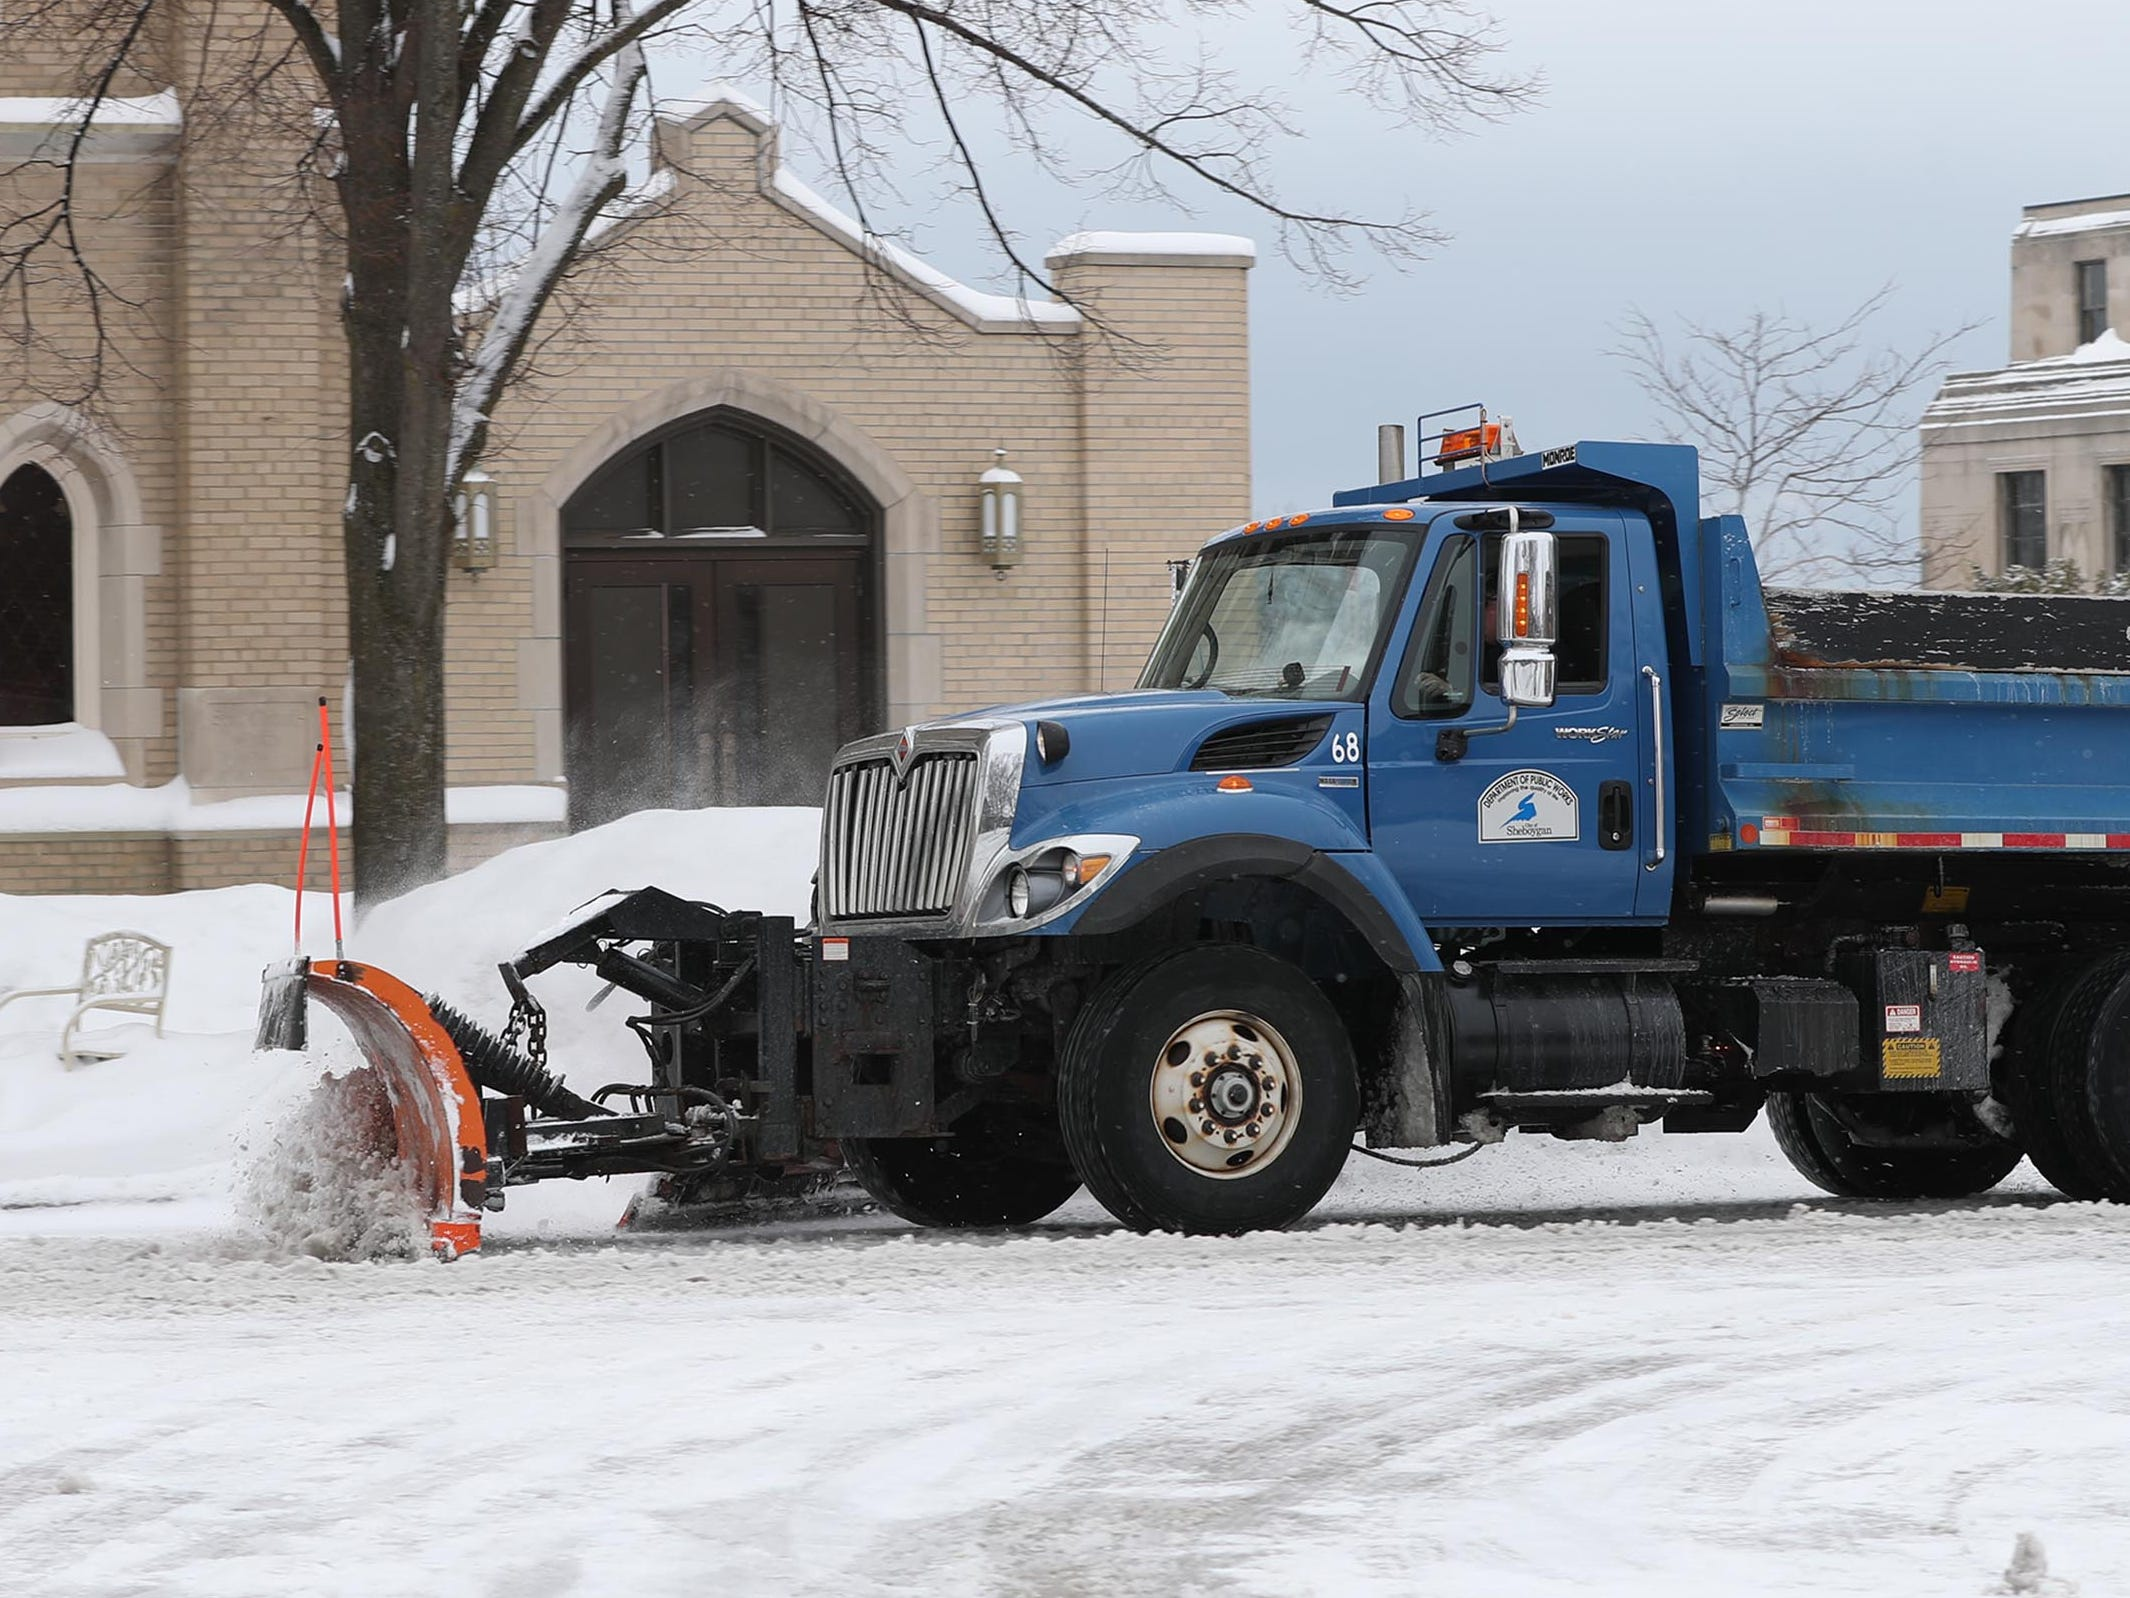 A City of Sheboygan snow plow clears the way on North 6th Street near New York Avenue, Wednesday, February 27, 2019, in Sheboygan, Wis.